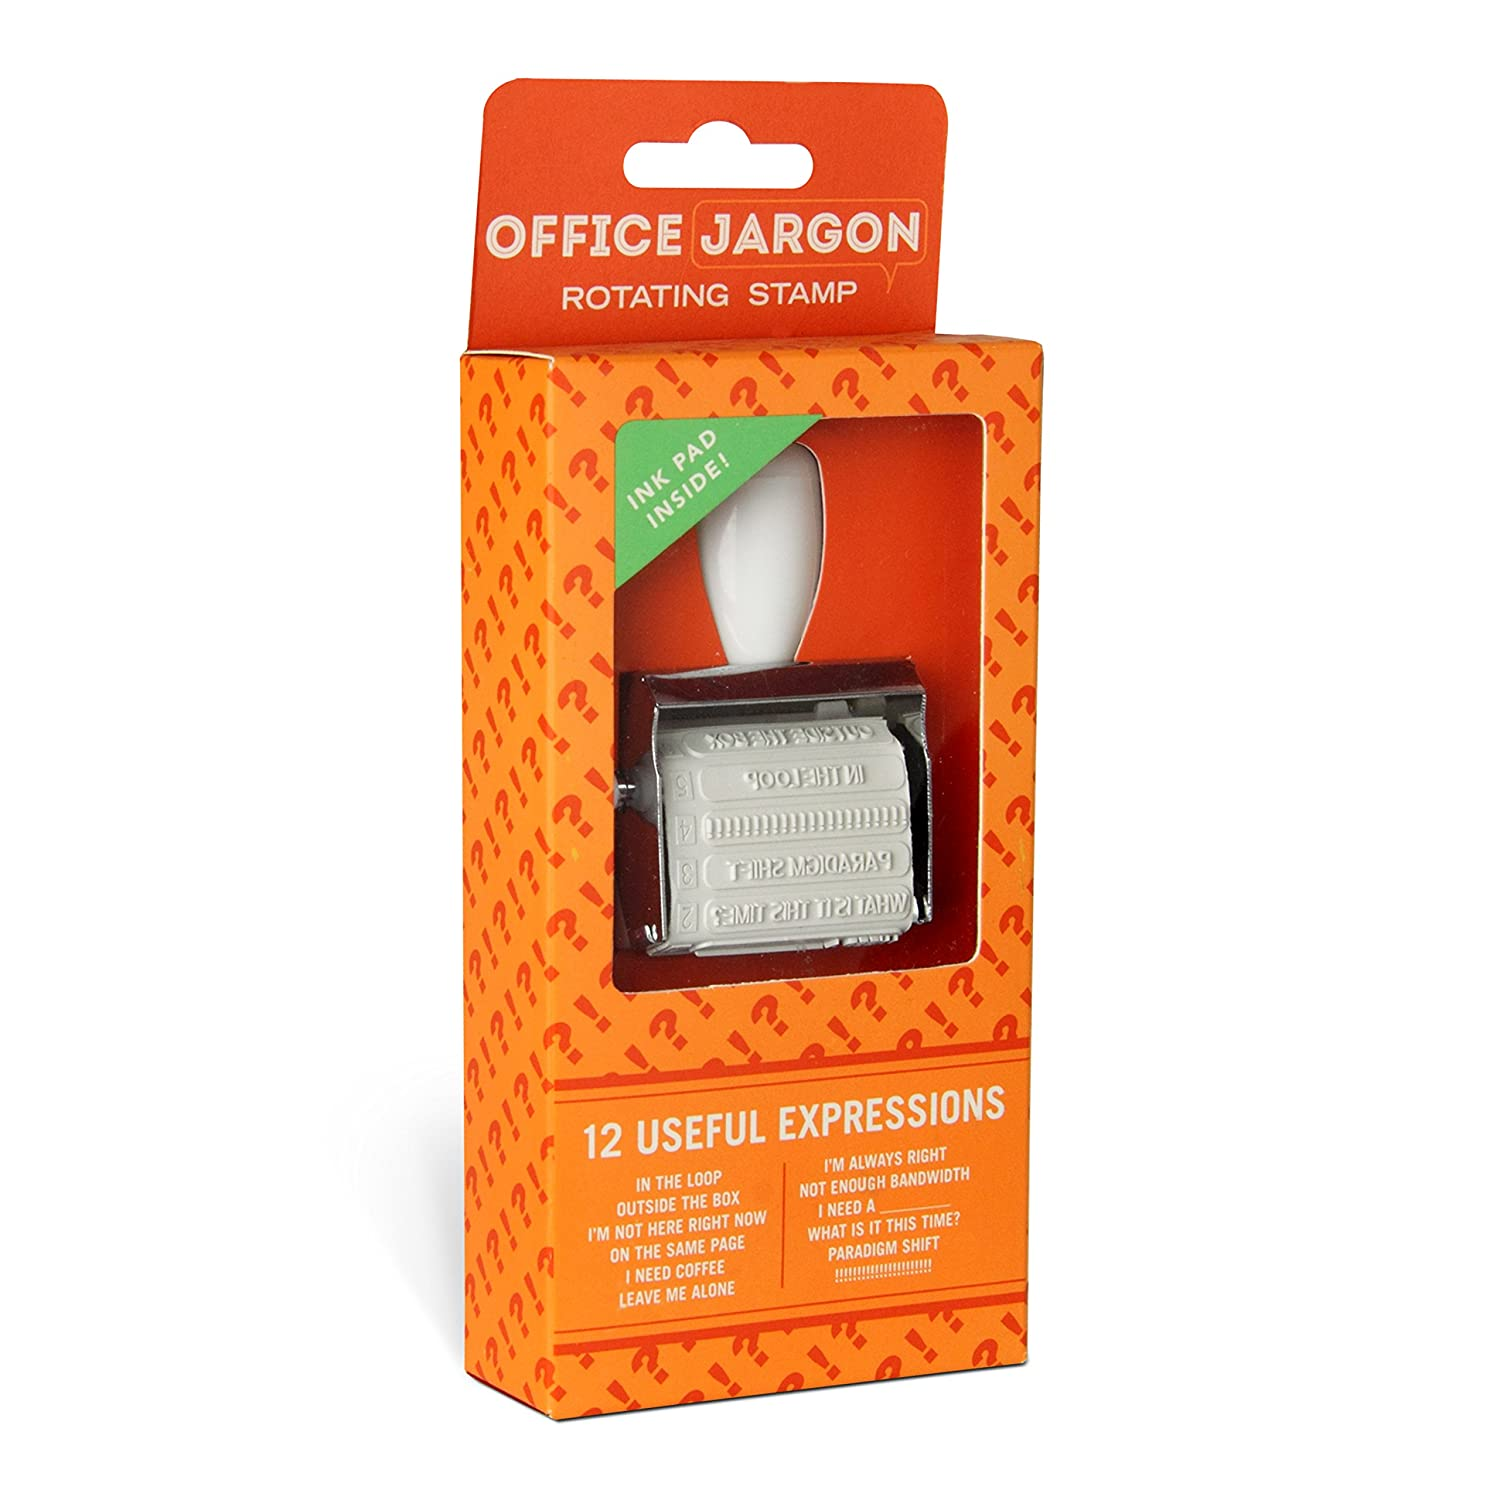 Knock Knock Rotating Office Jargon Stamp (10023) Knock Knock (Office Products)